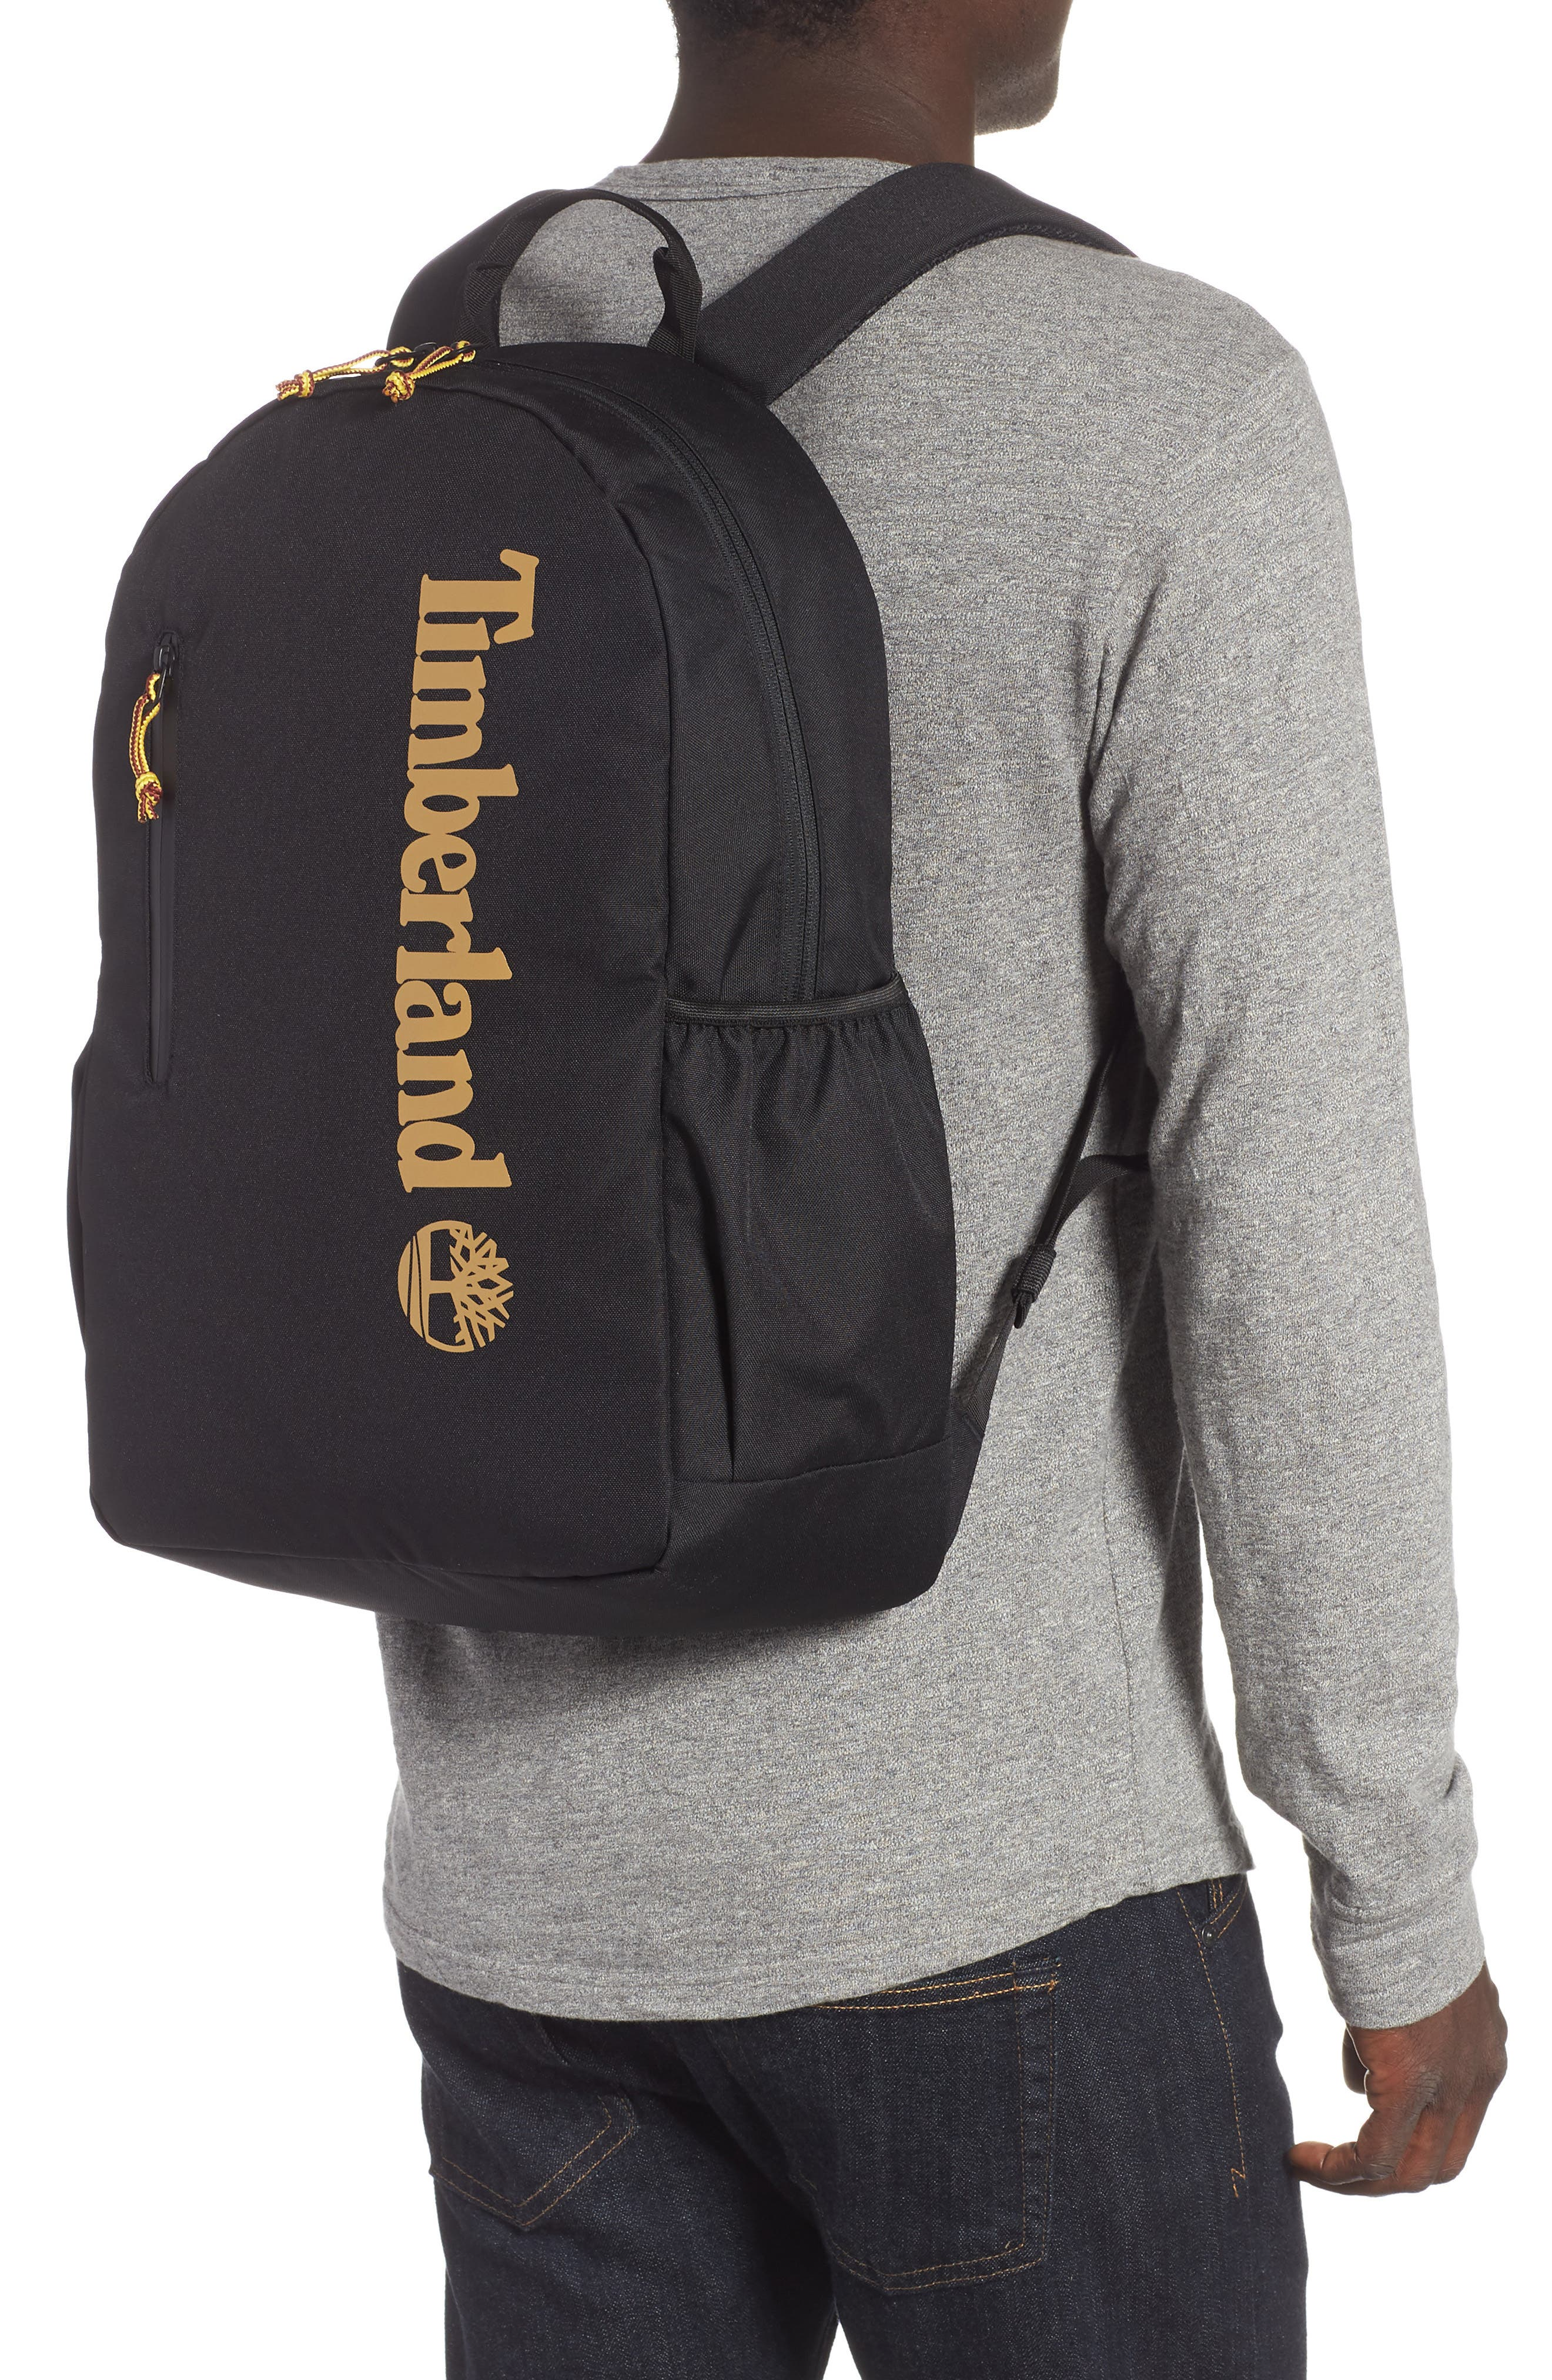 Linear Logo Water Resistant Backpack,                             Alternate thumbnail 2, color,                             BLACK W/ WHEAT LOGO